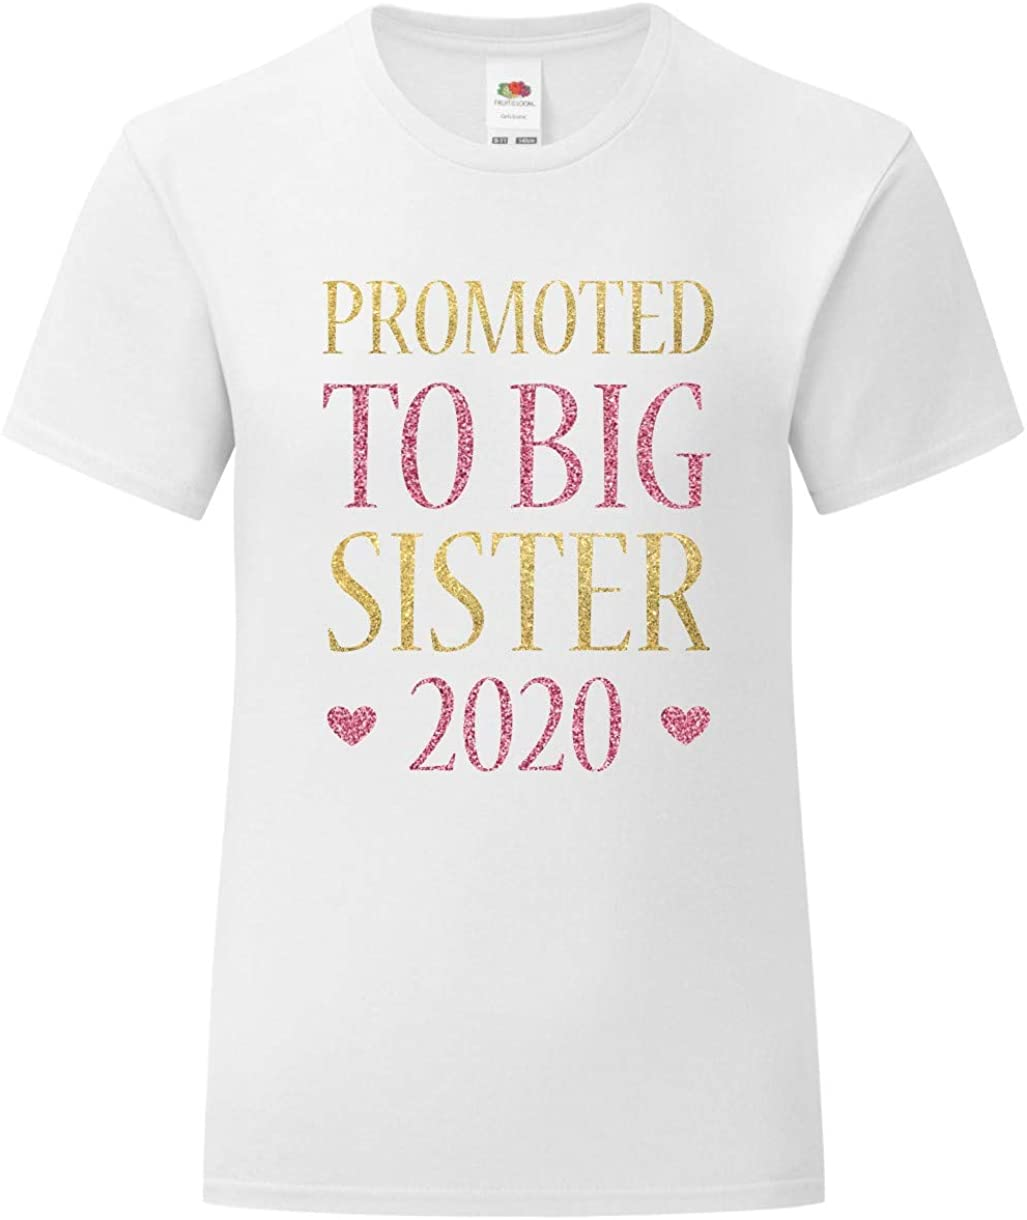 Little Sister Gold /& Pink Glitter T-Shirts and Bodysuits T-Shirts /& Bodysuits Direct 23 Ltd Big Middle